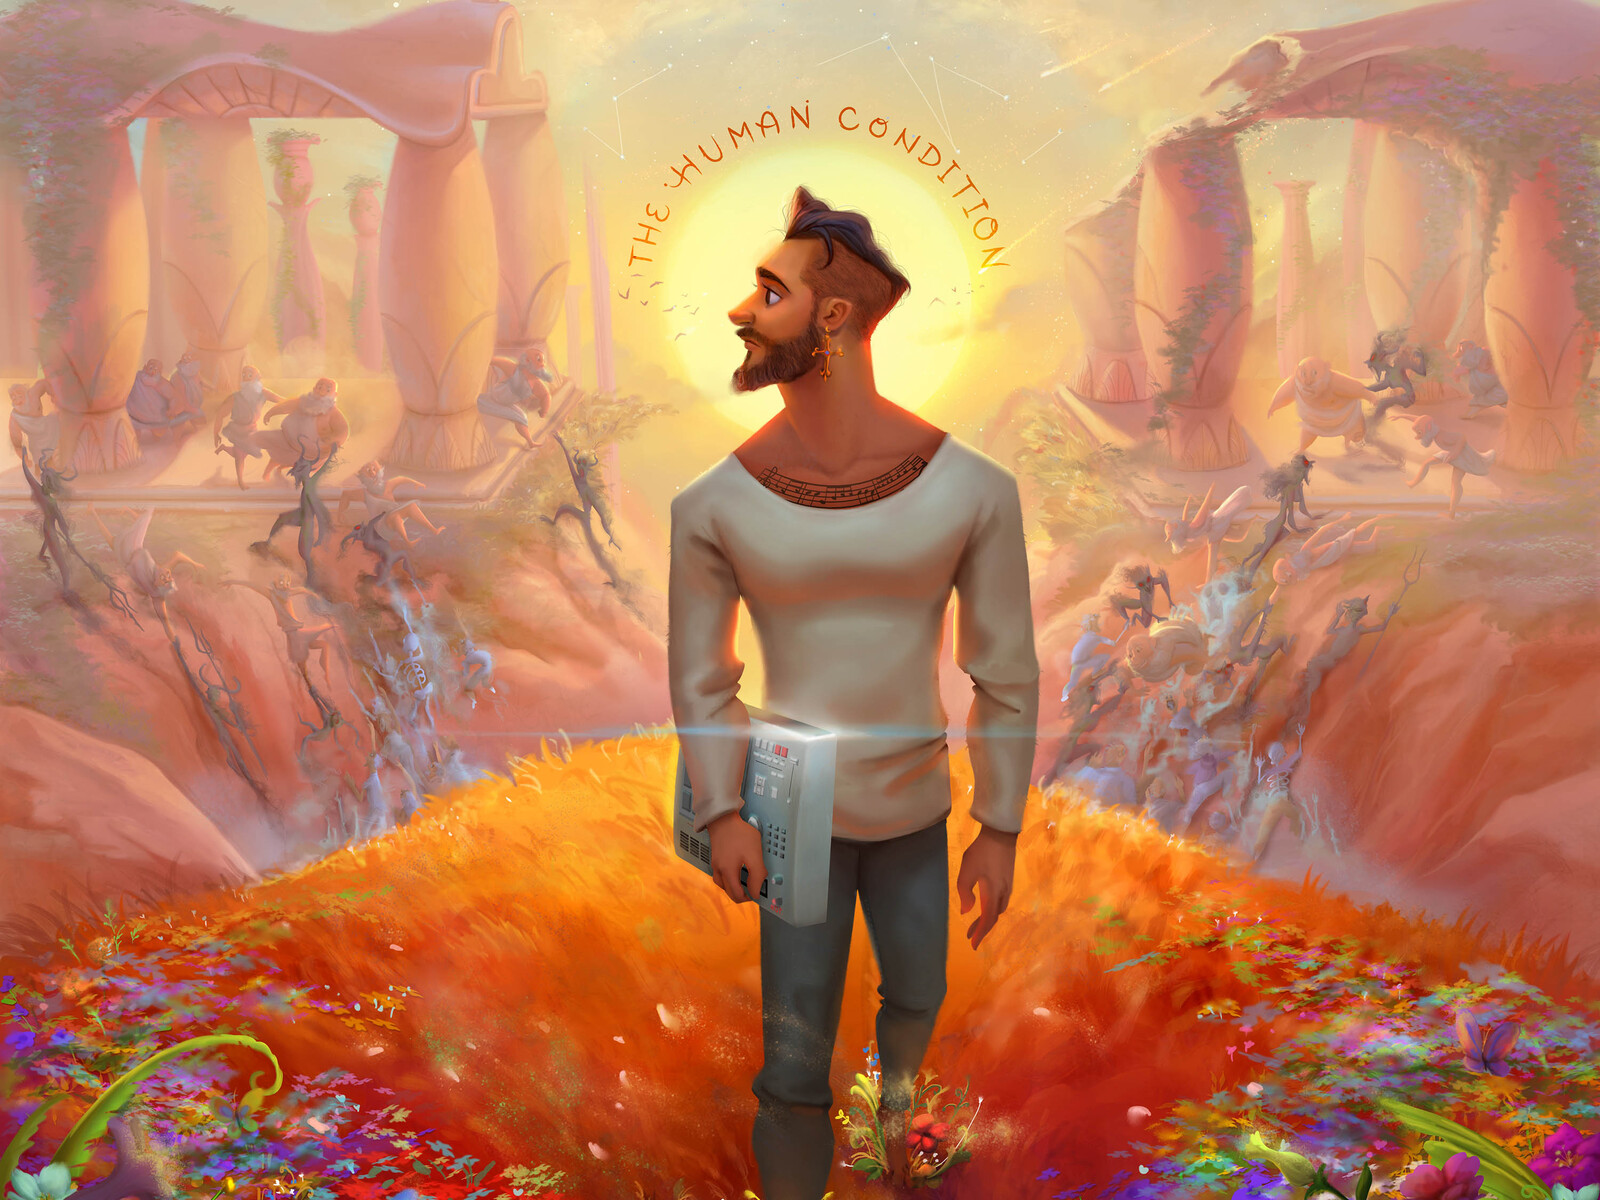 1600x1200 Jon Bellion All Time Low Album Cover Art 1600x1200 Resolution Hd 4k Wallpapers Images Backgrounds Photos And Pictures